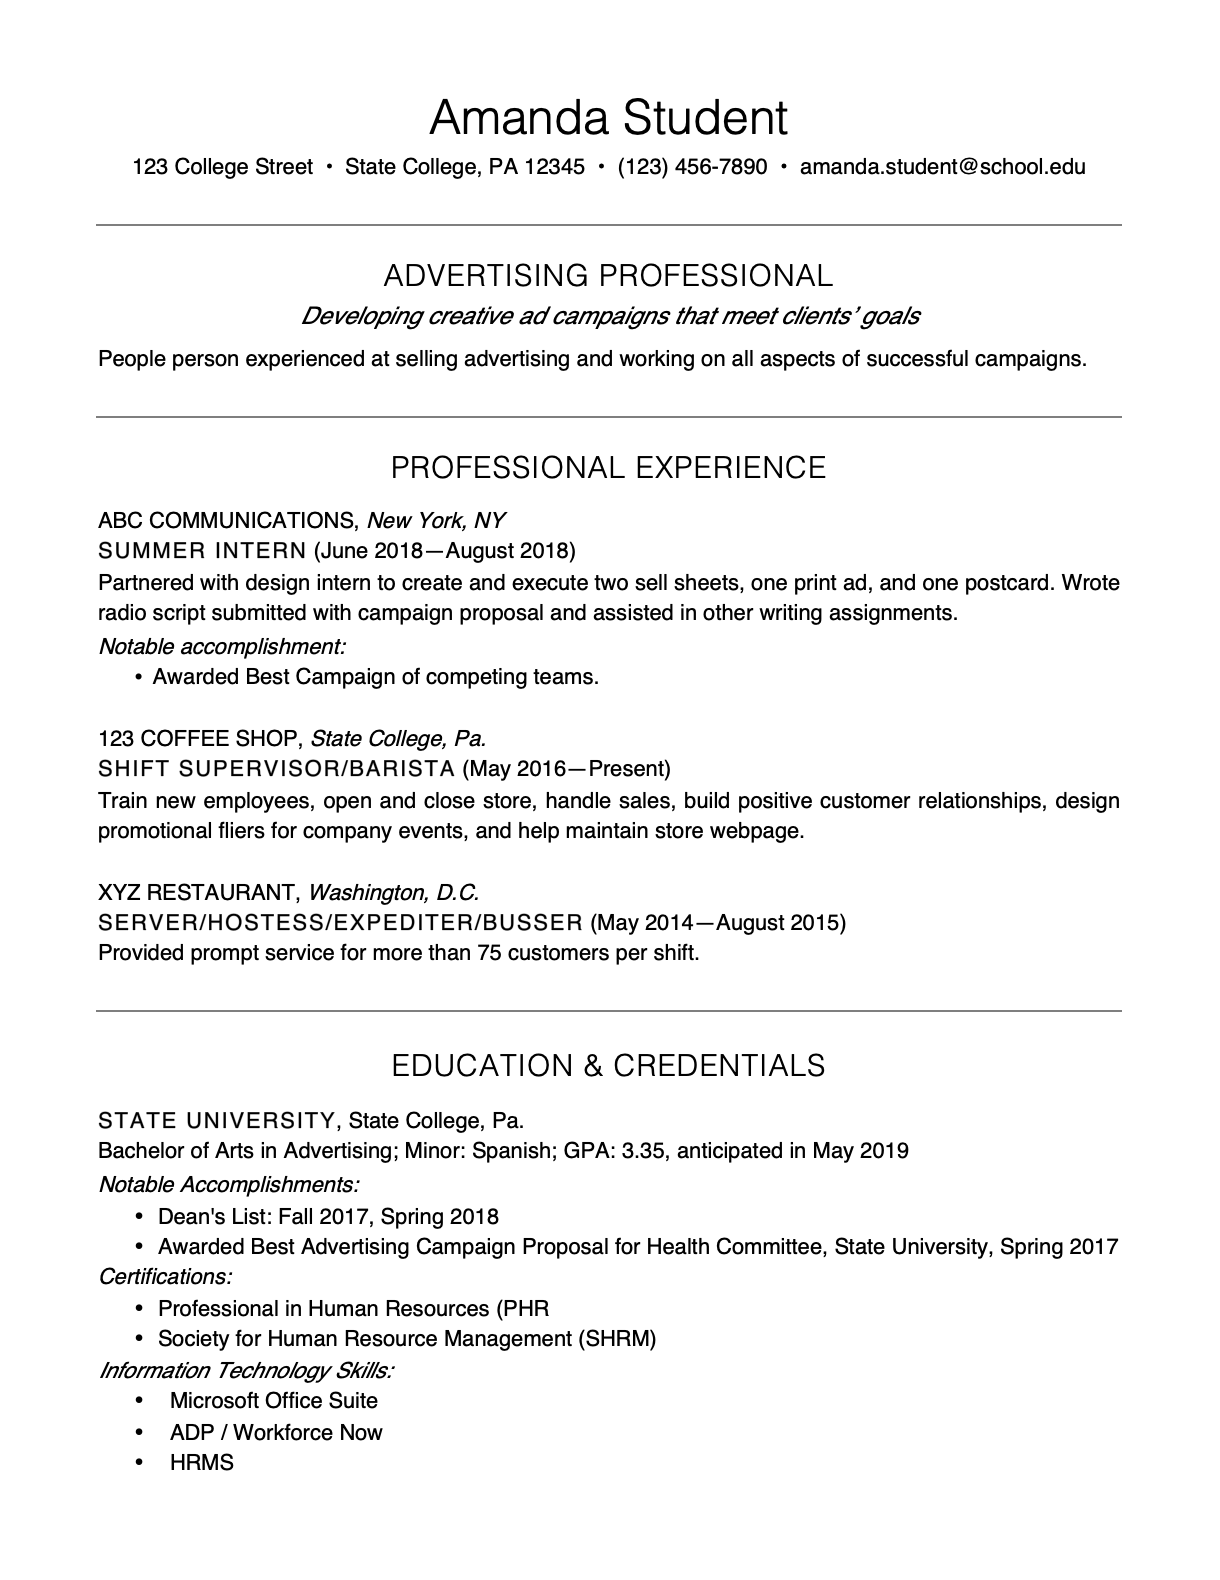 Sample Resume for First Job Out of College from thebalancecareers.com